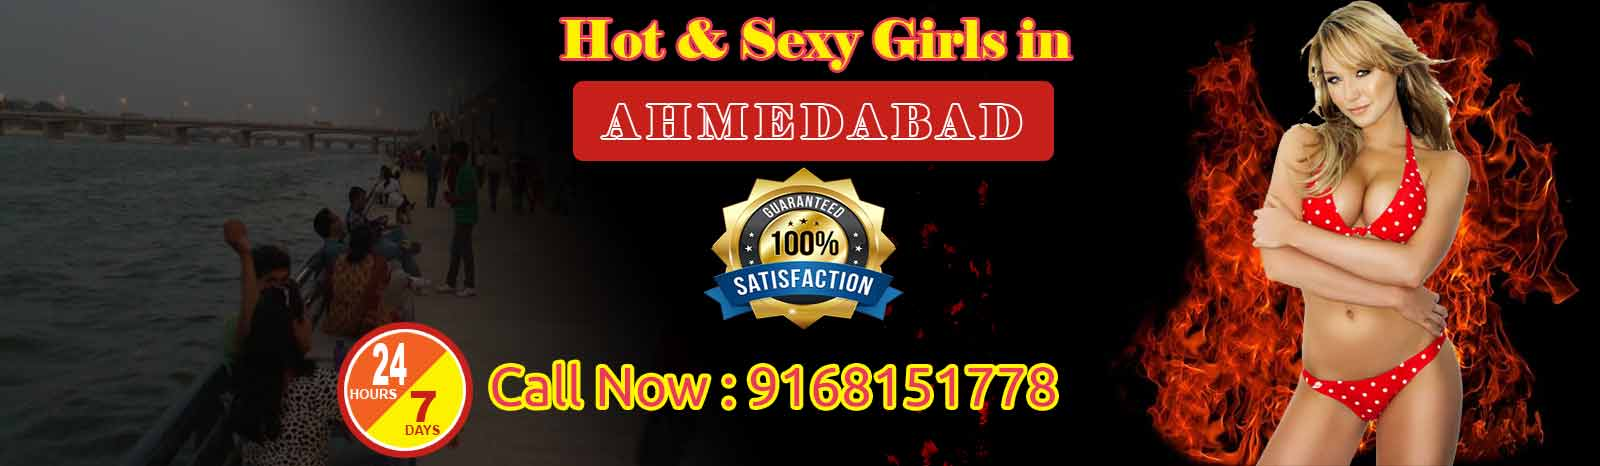 Call Girls Services ahmedabad